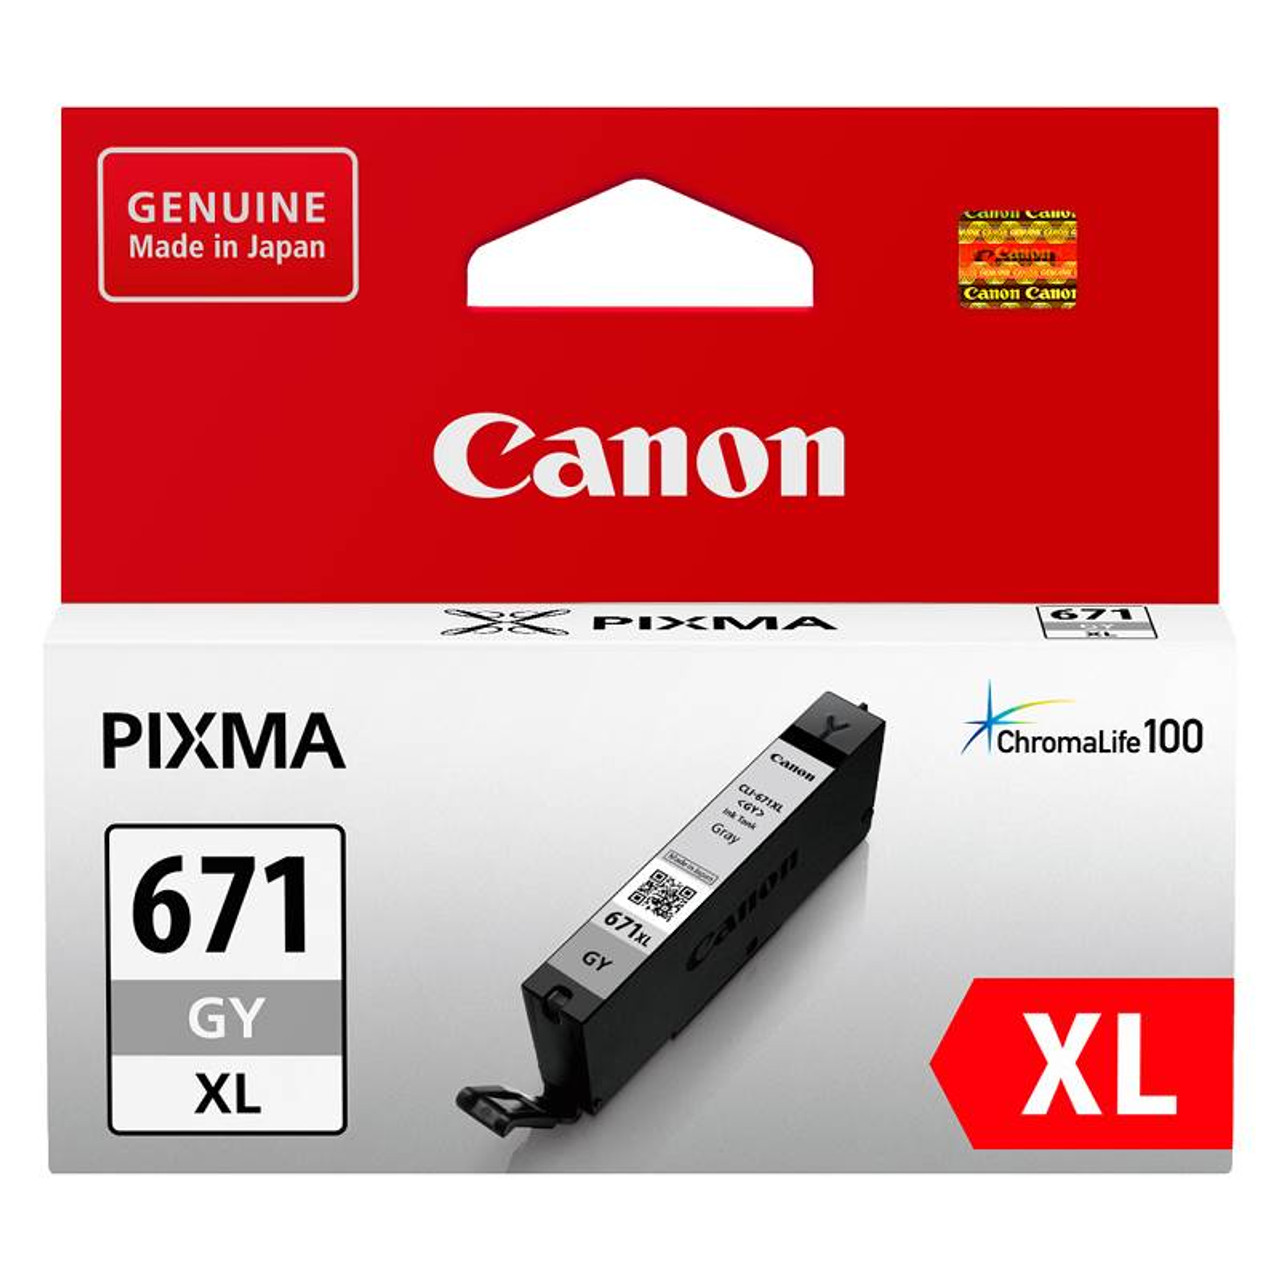 Image for Canon CLI-671XLGY High Capacity Grey Ink Cartridge CX Computer Superstore